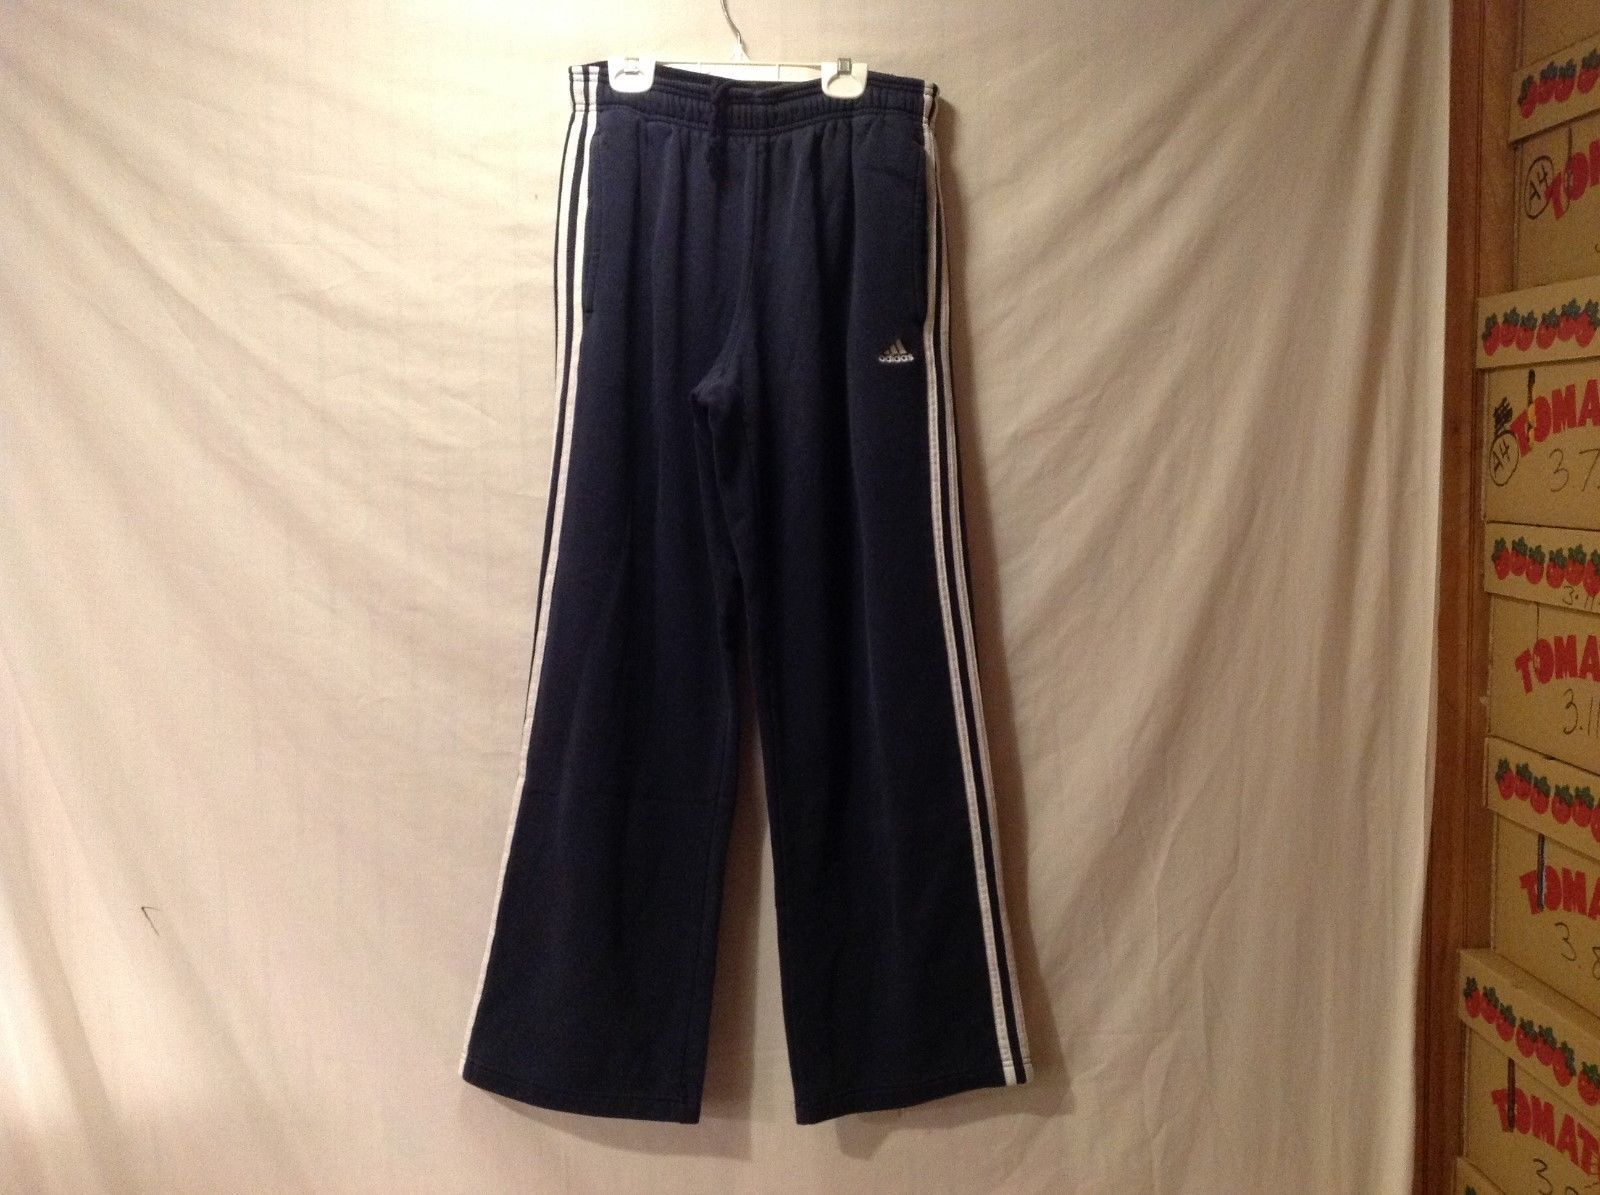 Mens ADIDAS Navy Sweatpants Size M